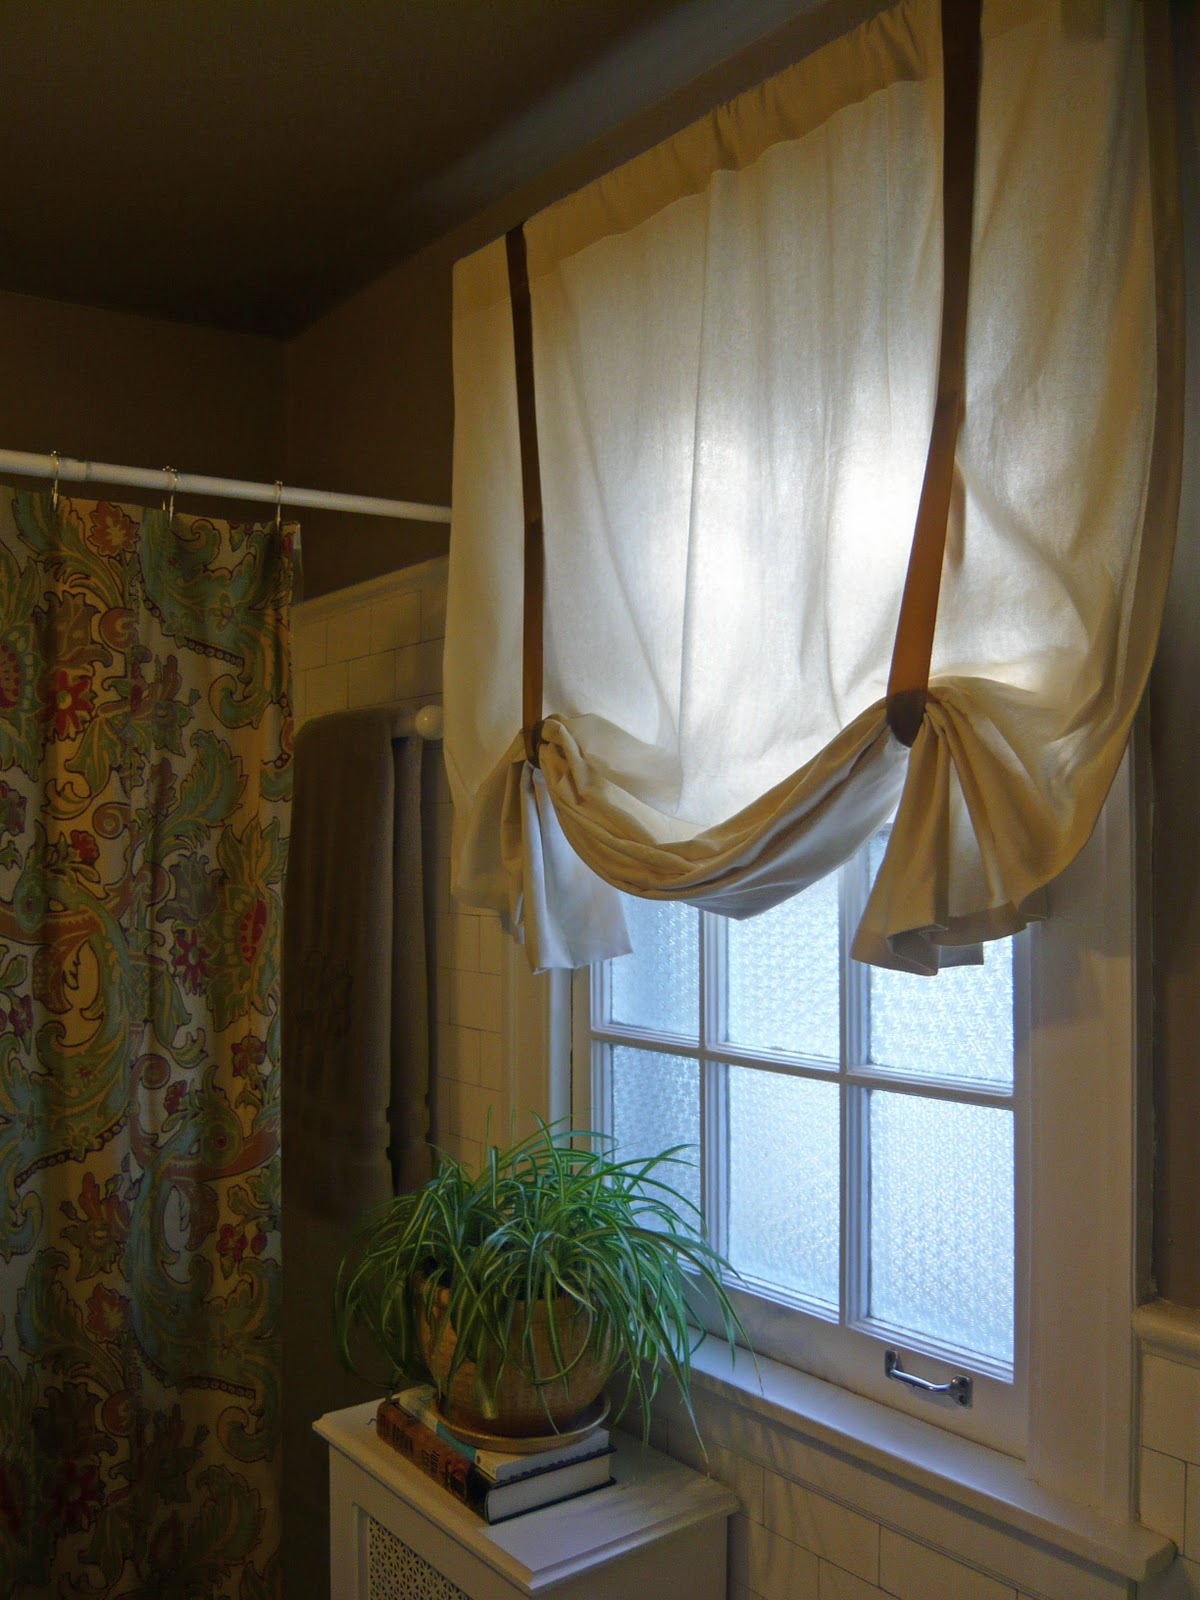 DIY No-Sew Curtains curtain panel and stitch witchery – Restored